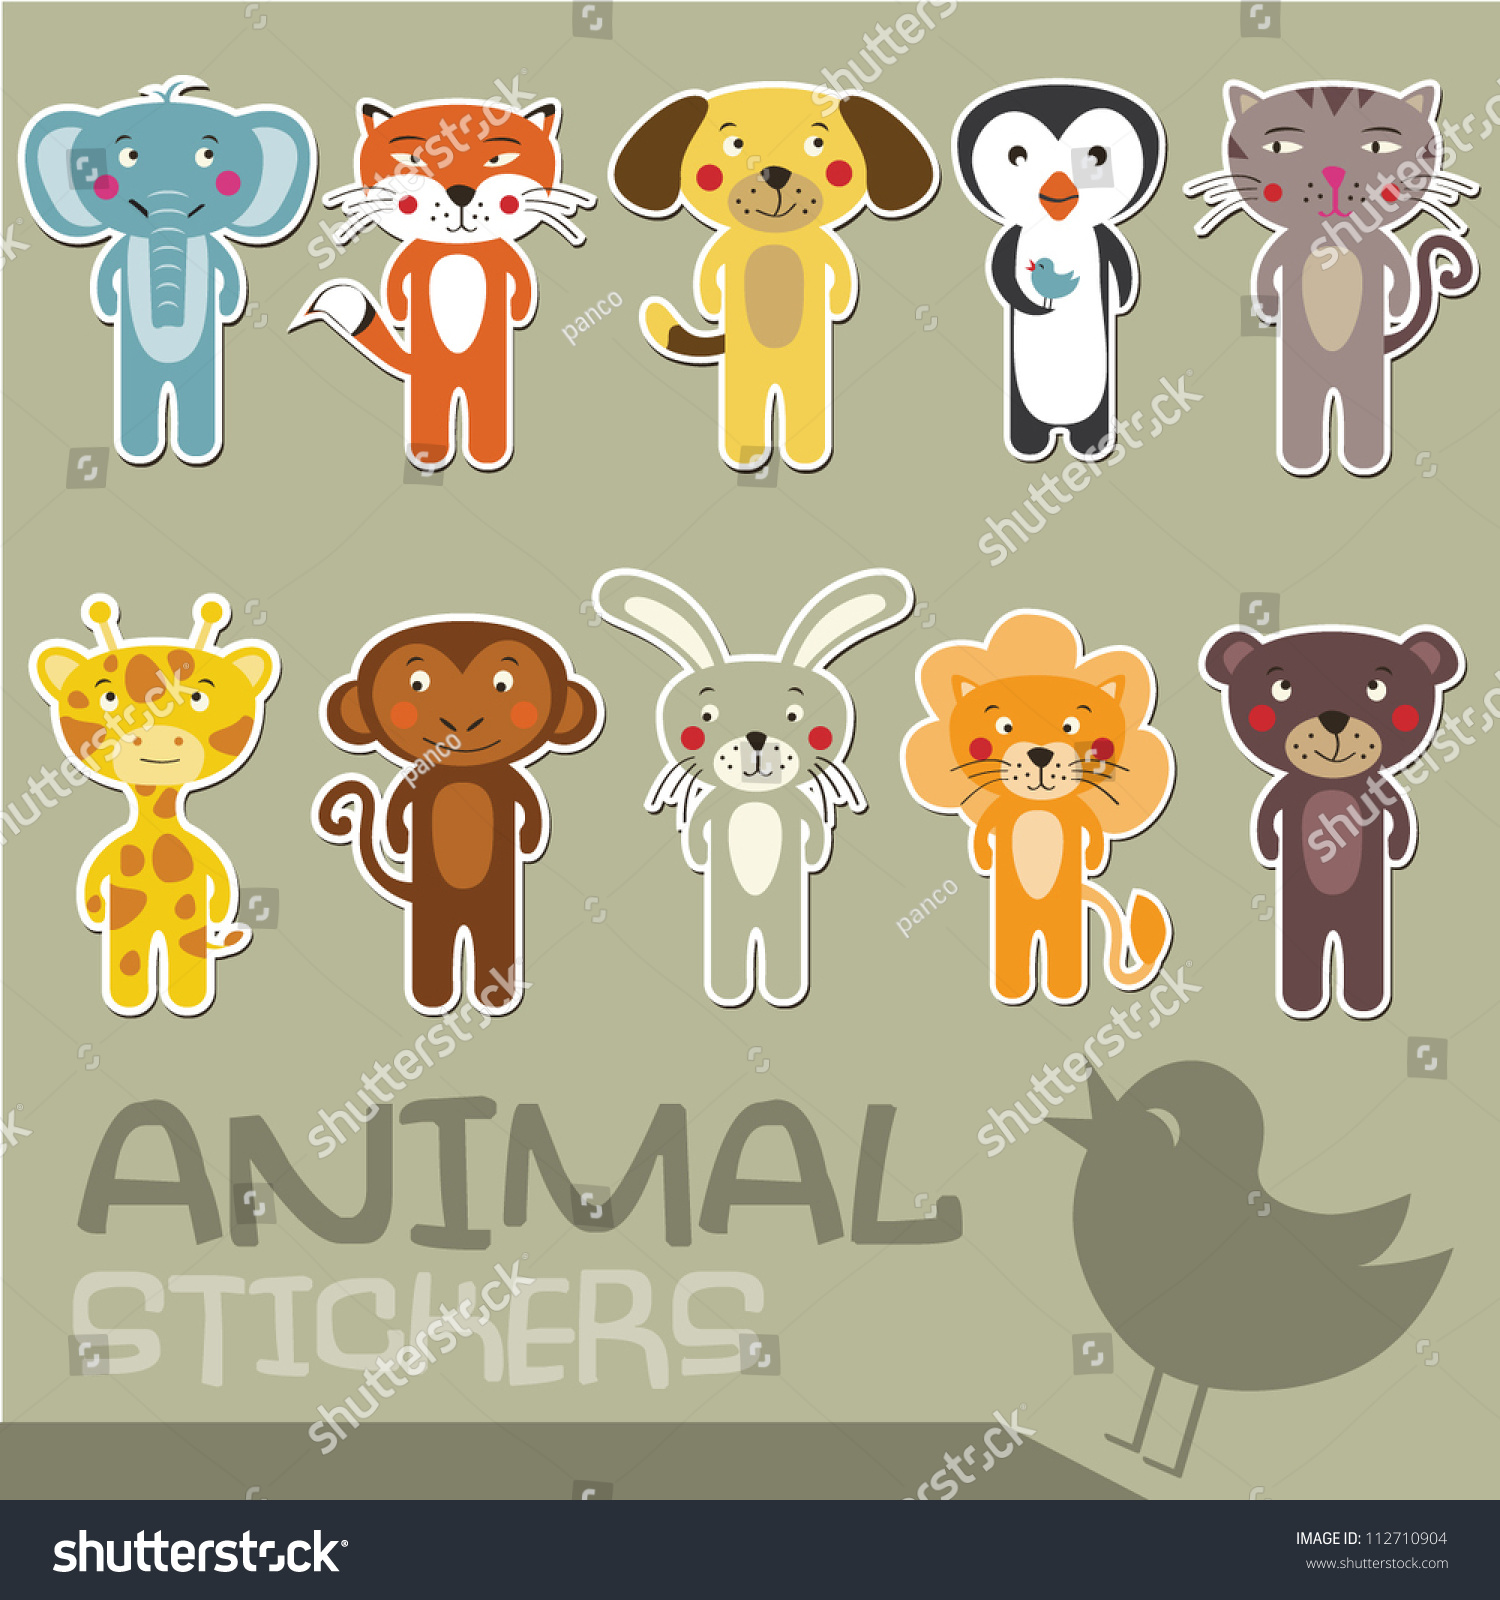 cartoon animal stickers in - photo #8